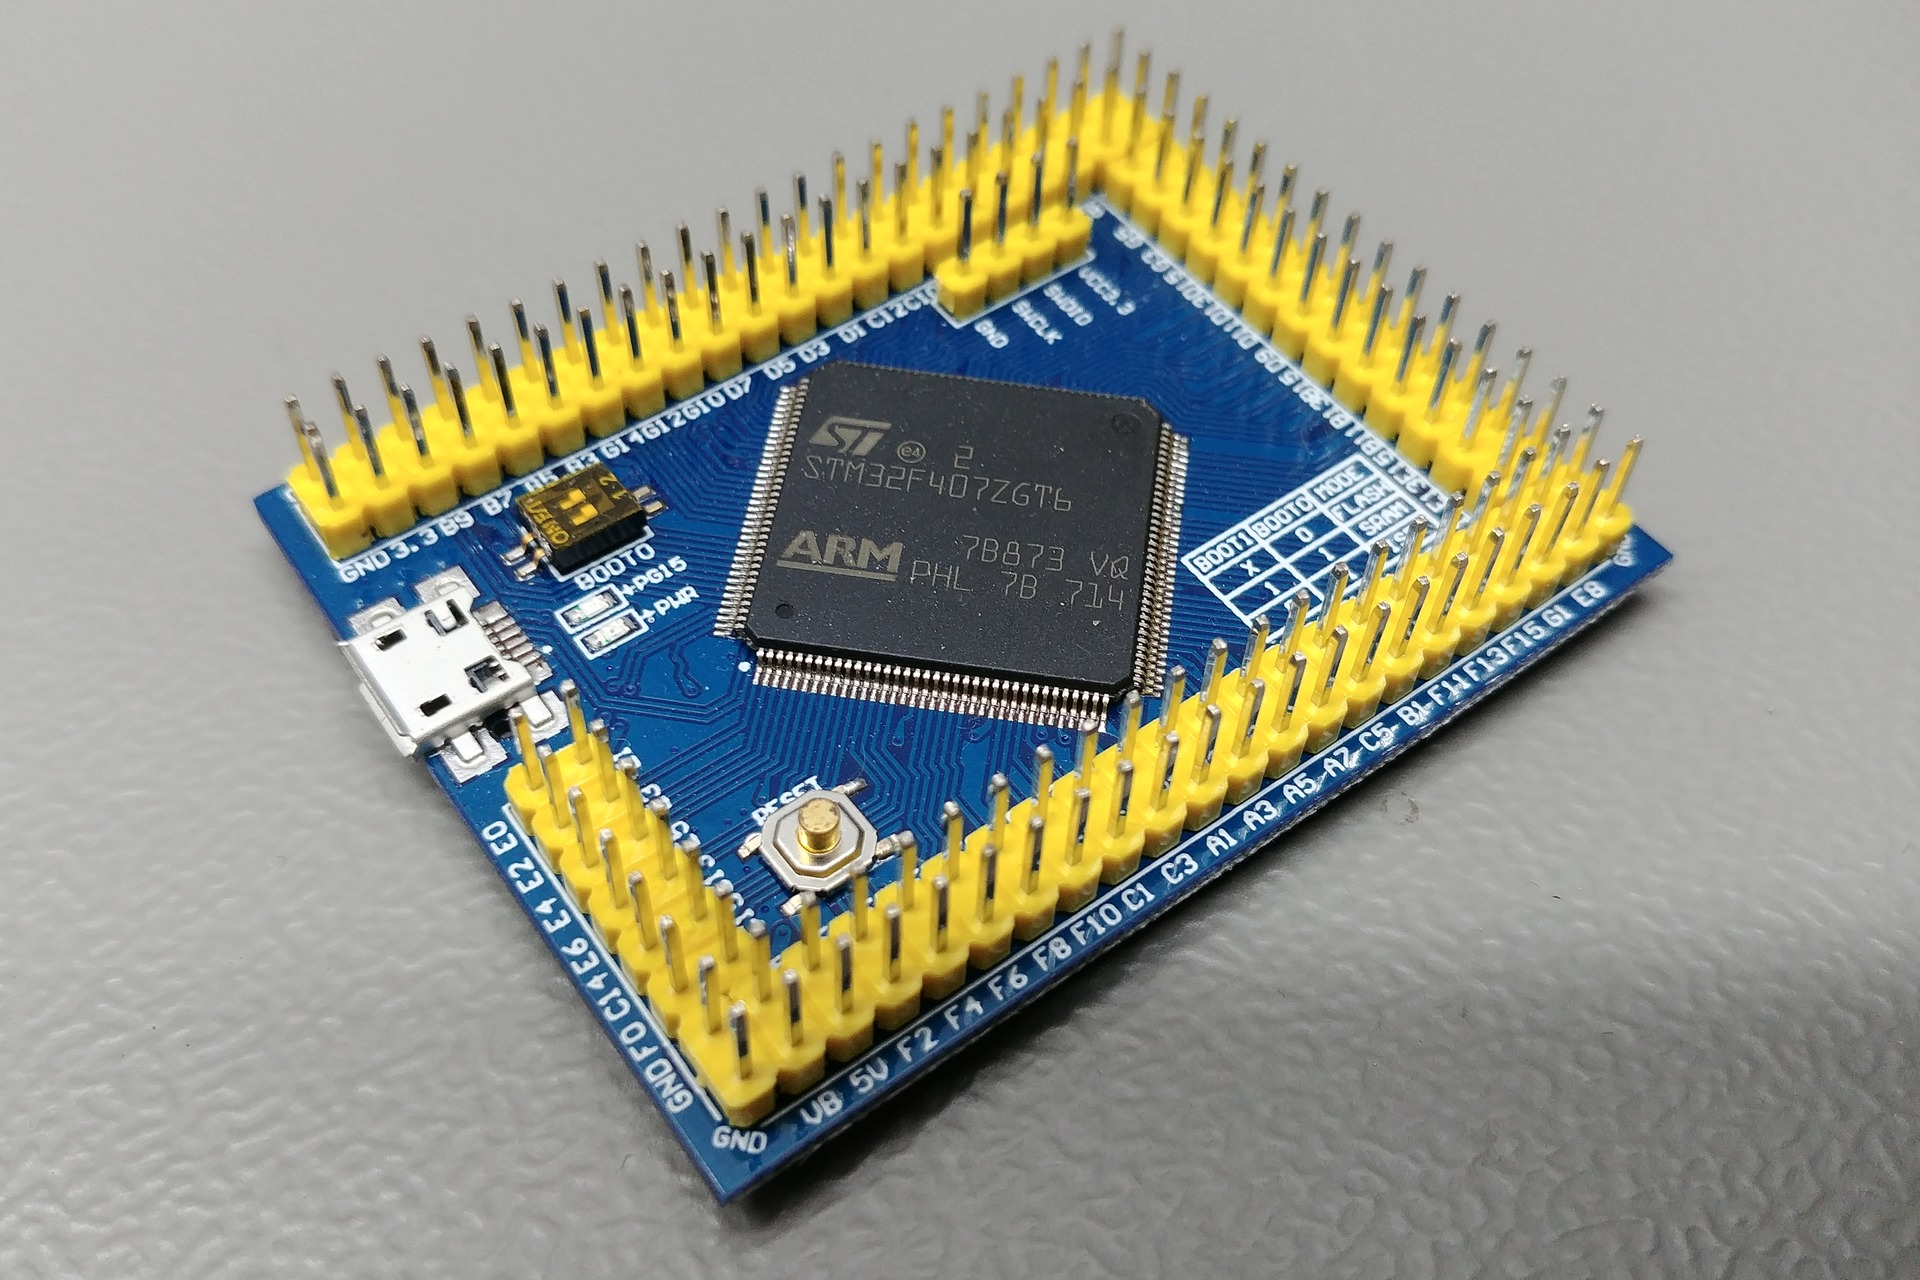 Picture of the vcc-gnd.com STM32F407ZGT6 mini